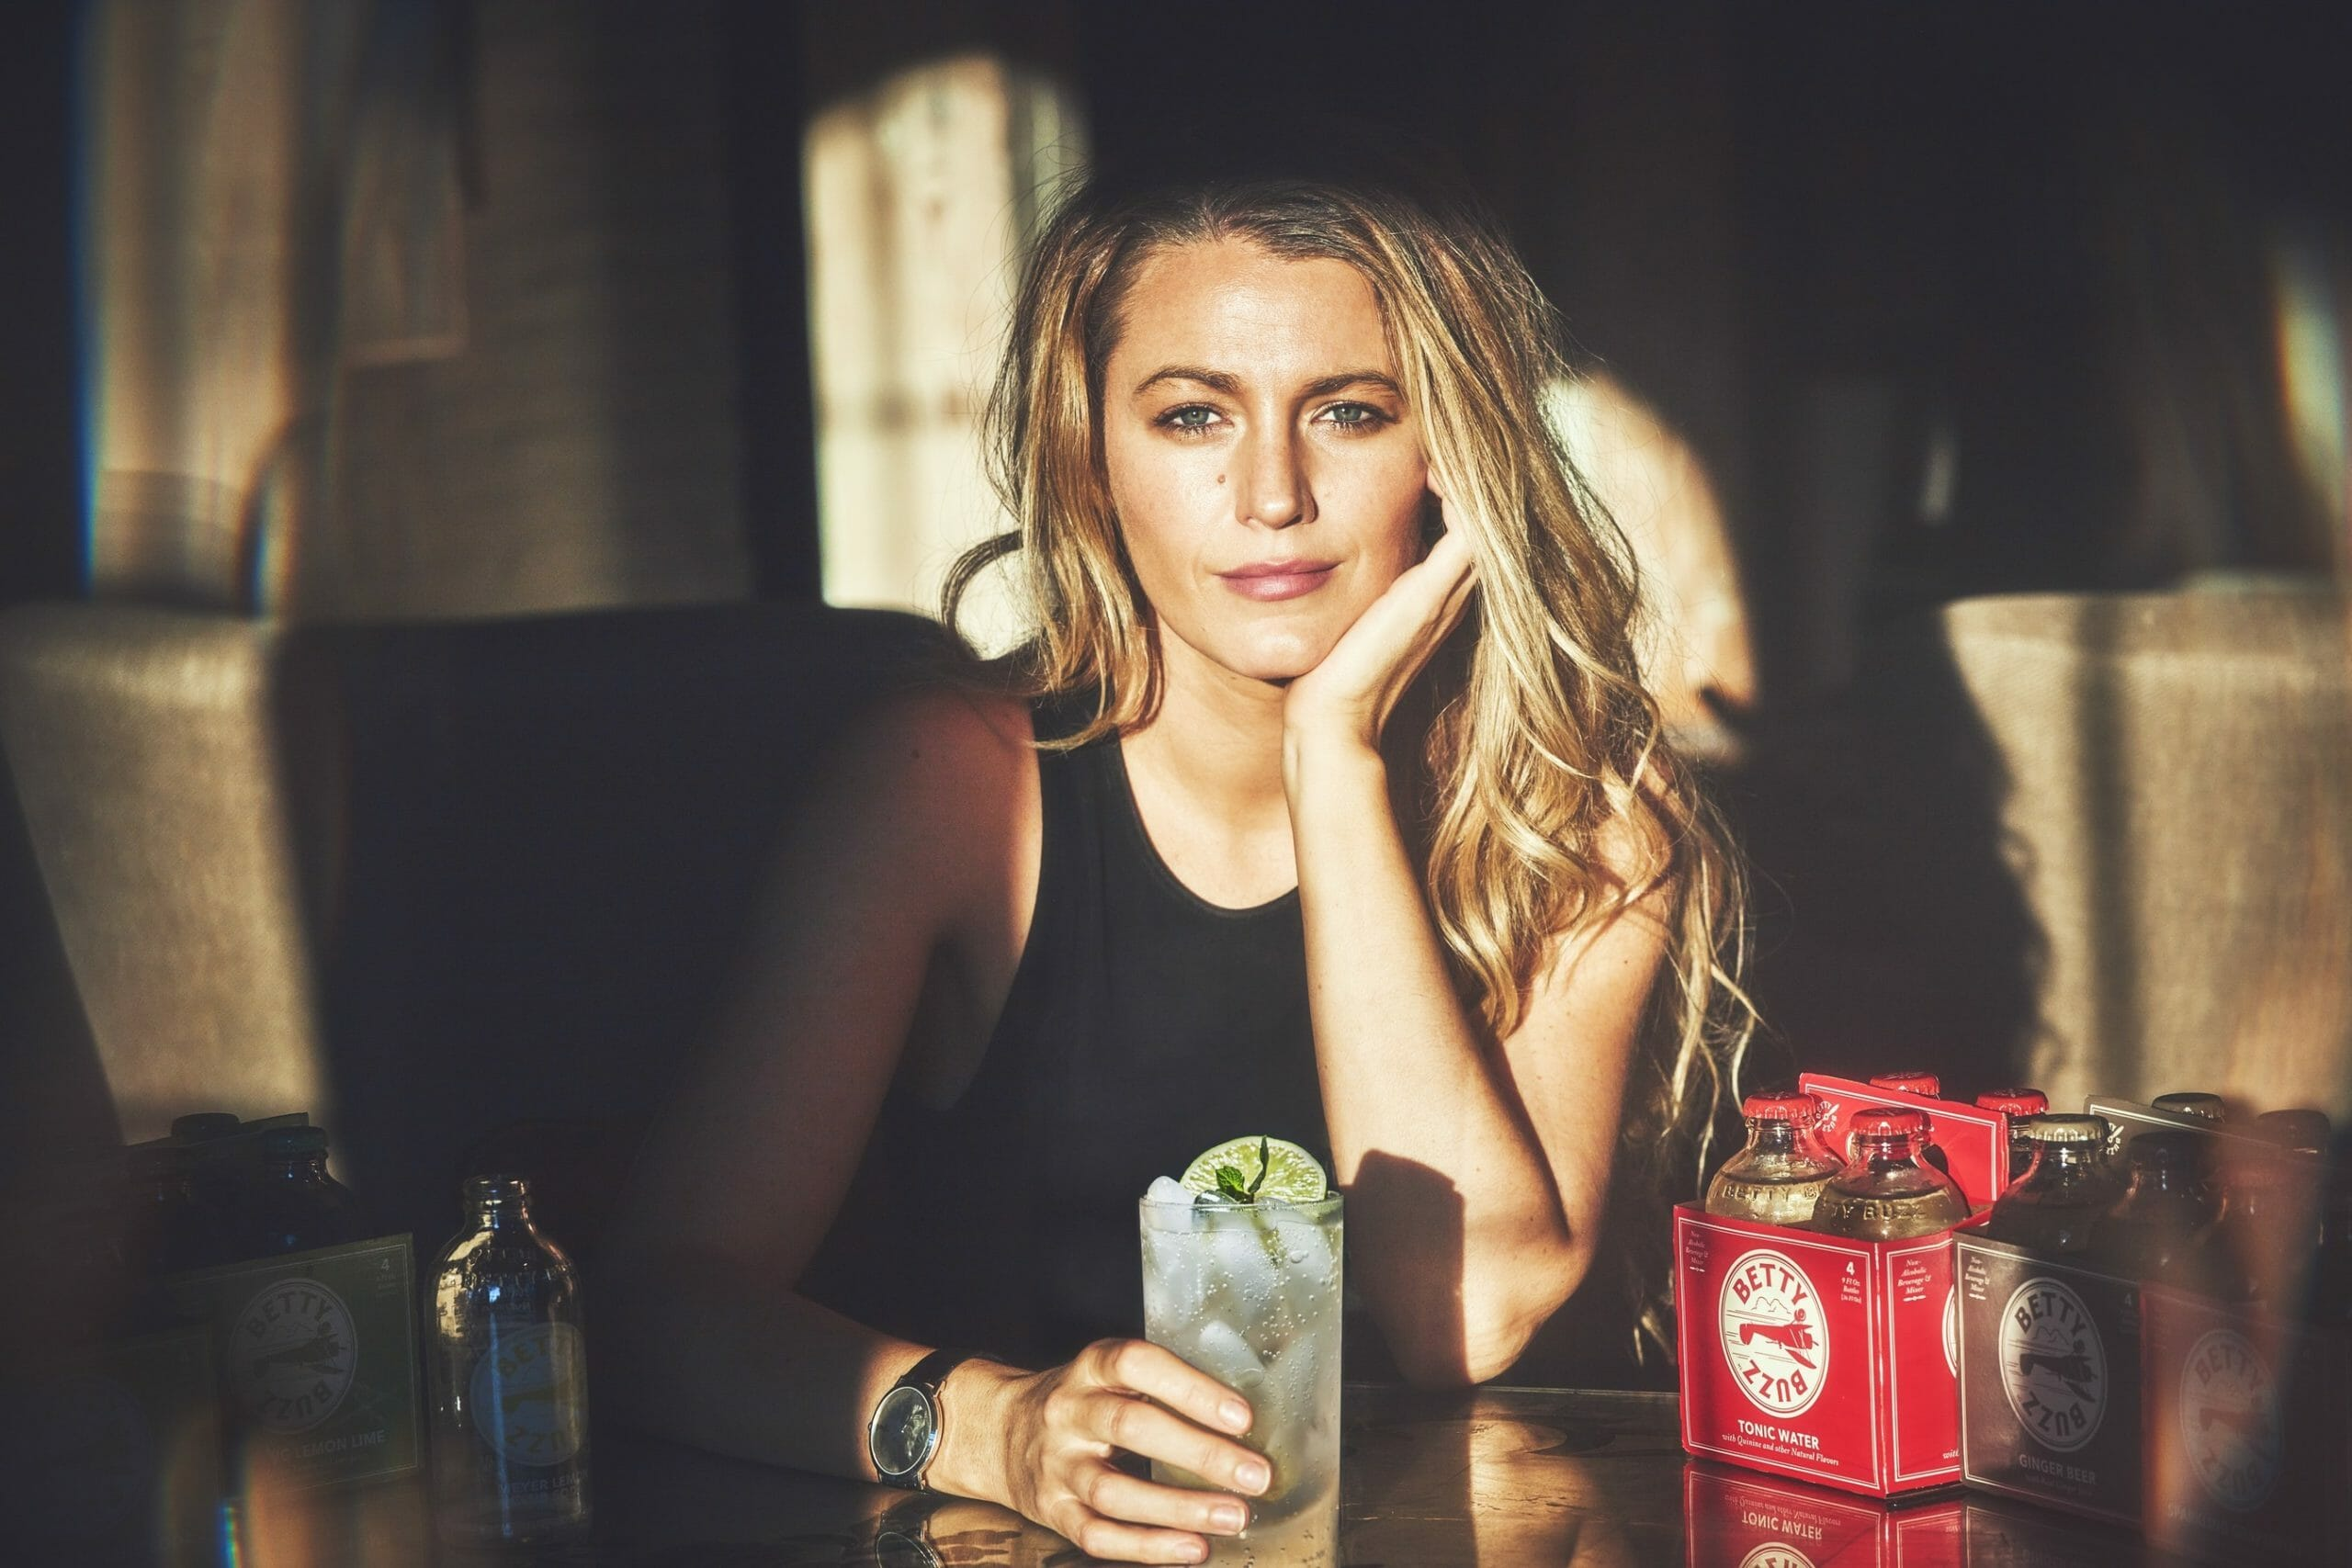 Blake Lively Creates A Buzz With Her New Sparkling Mixers